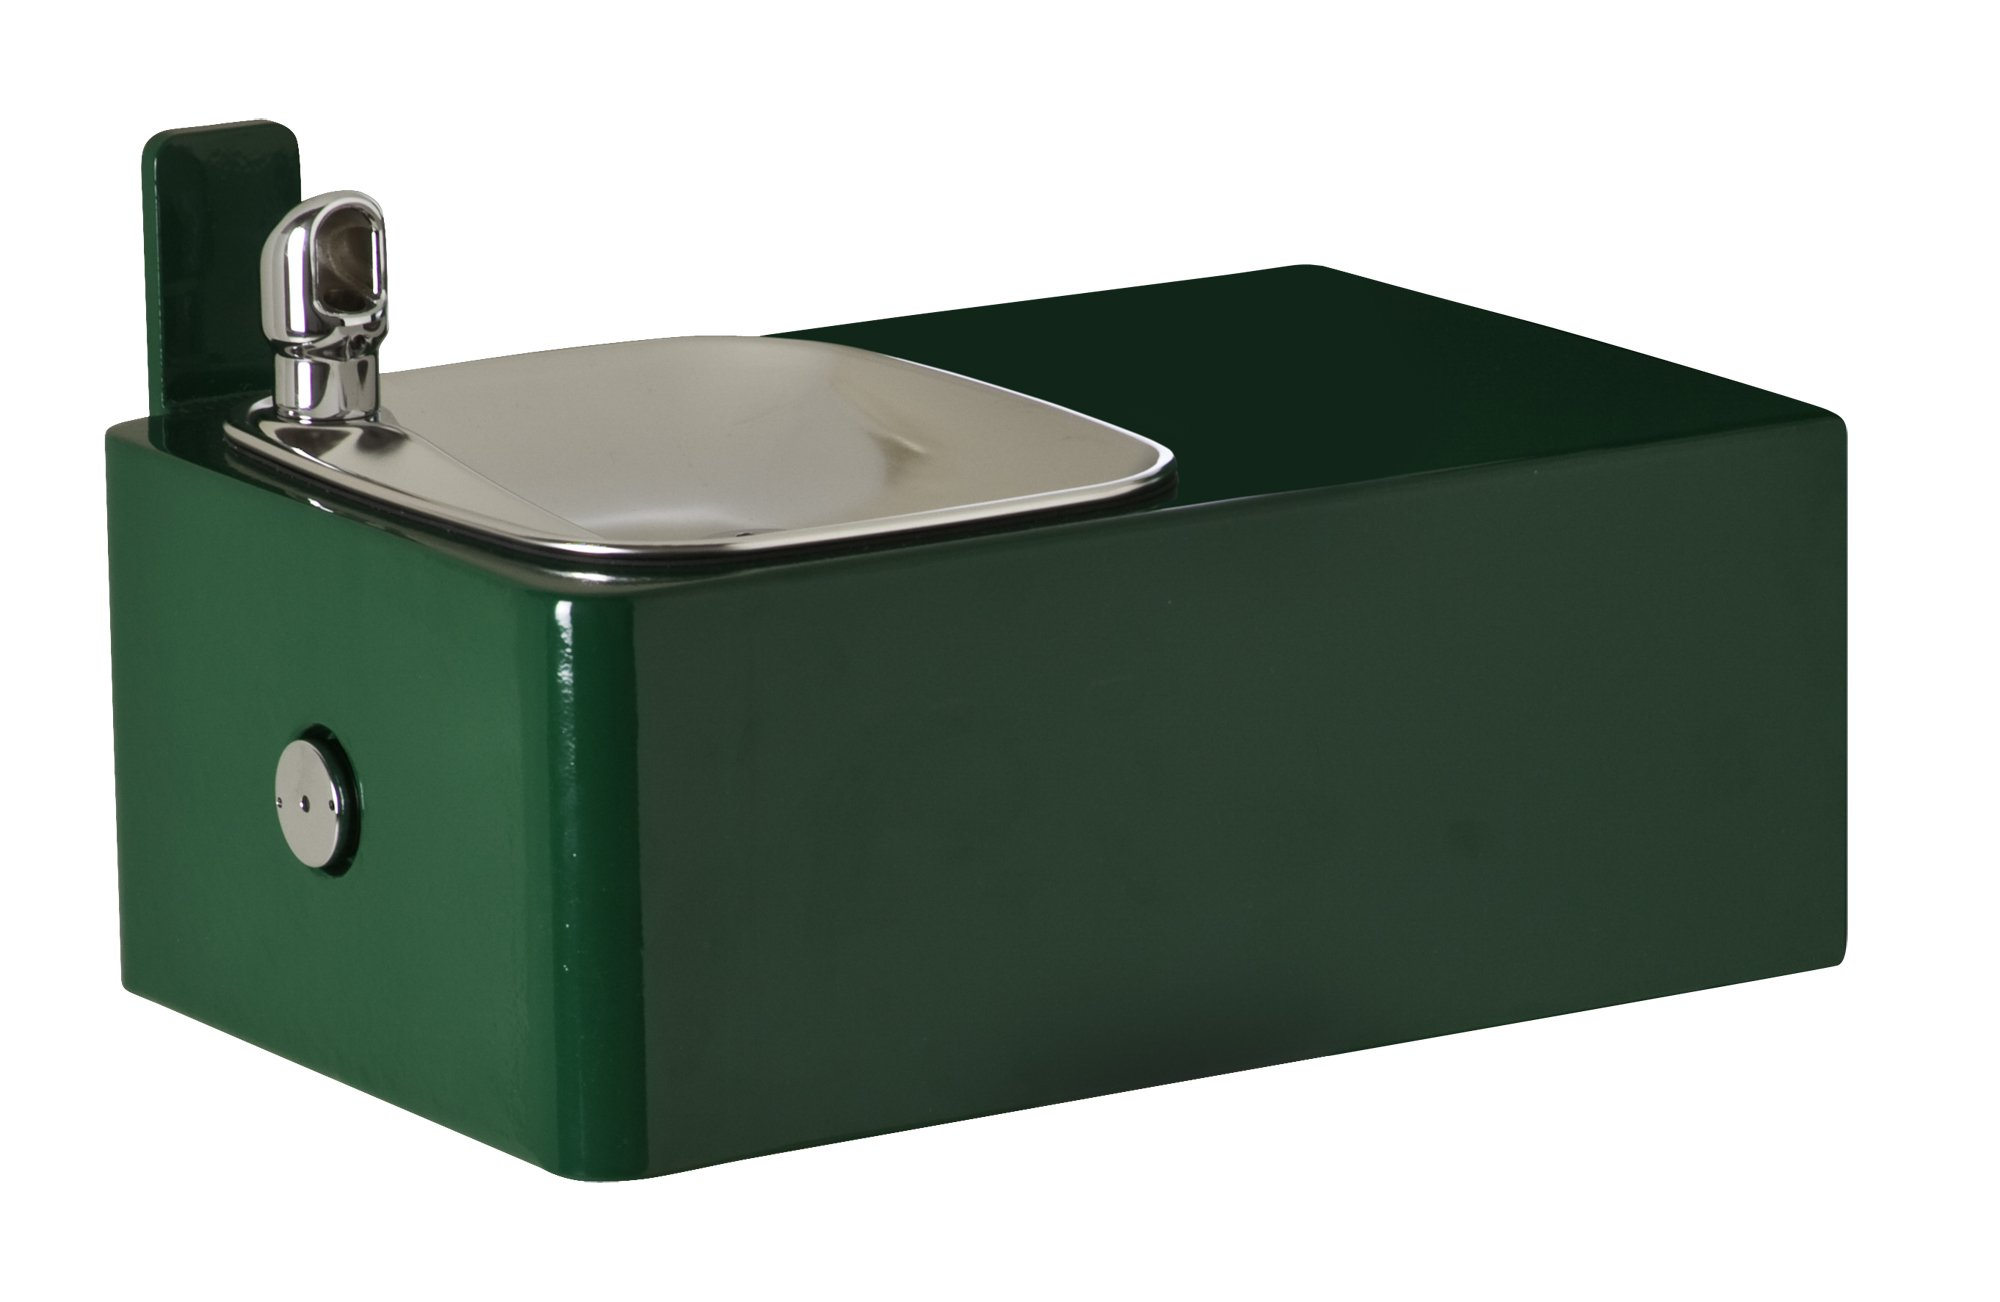 Haws 1025 11-Gauge Fabricated Steel Barrier-Free Wall Mounted Drinking Fountain with Green Powder-Coated Galvanized Steel Wall Bracket (Mounting Frame Not Included) by Haws